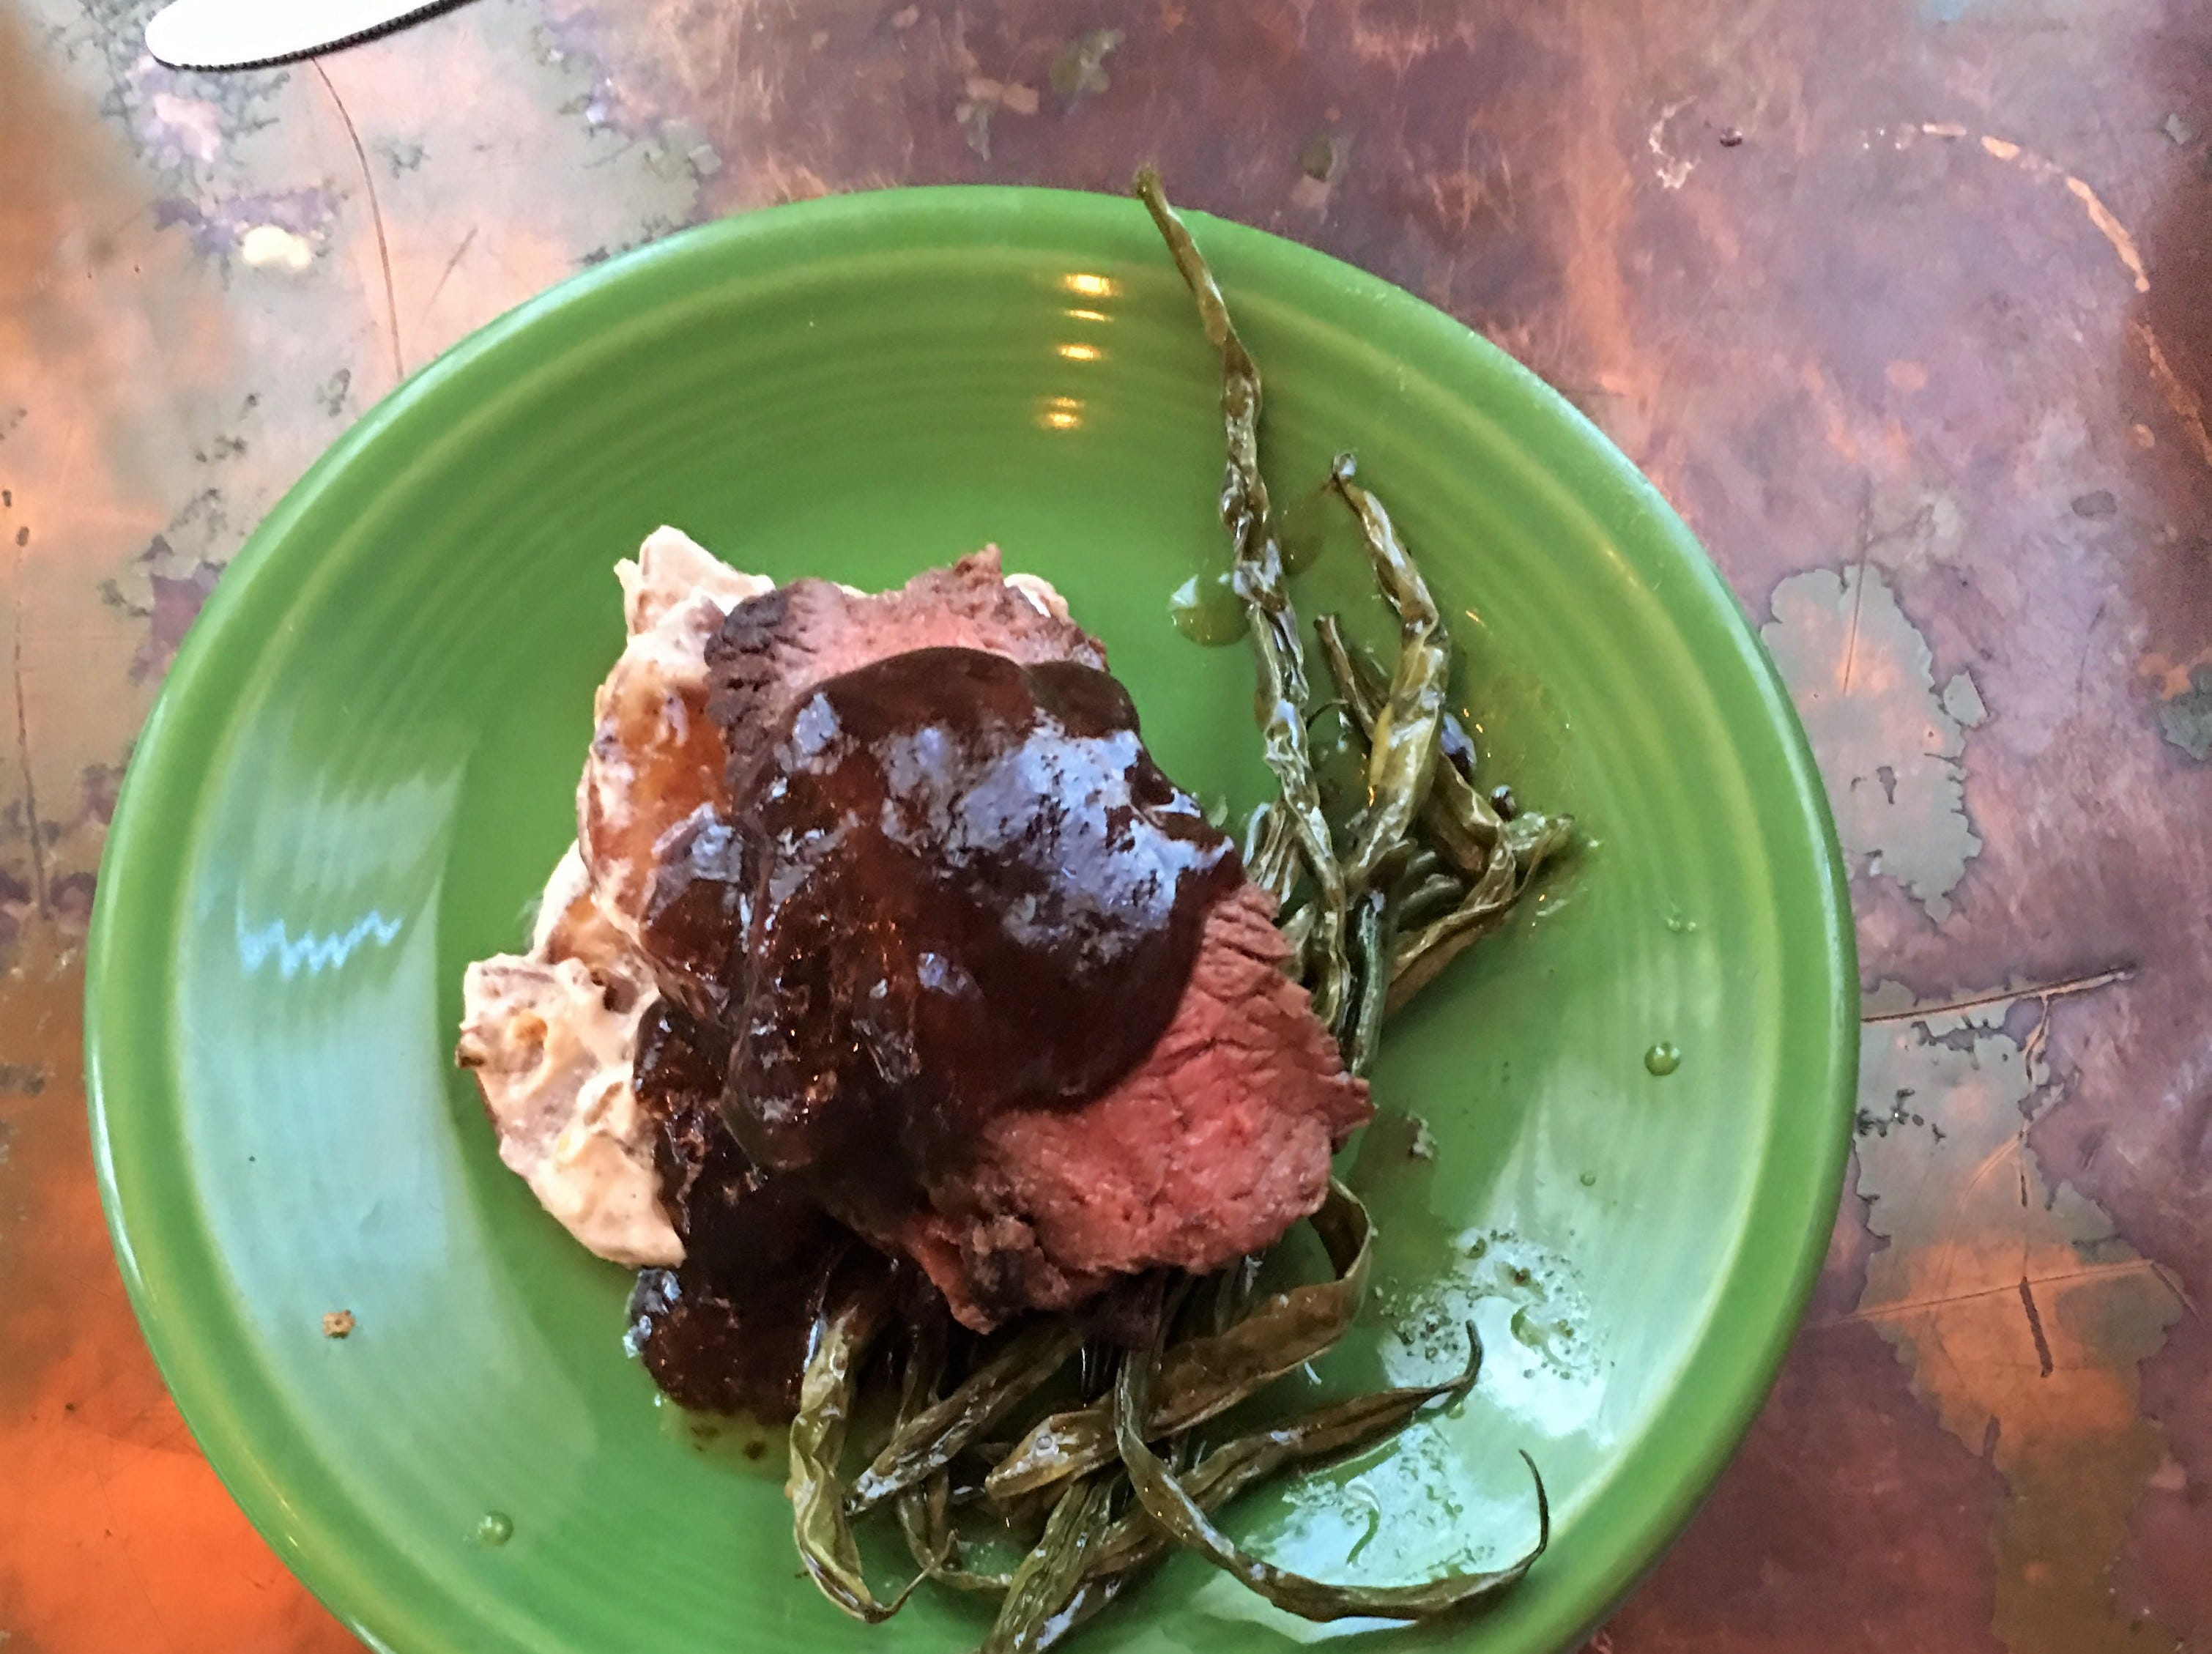 Creamy potatoes, sirloin roast, chocolate sauce and green beans from the Dapper Pig on an Evansville Culinary Tour.